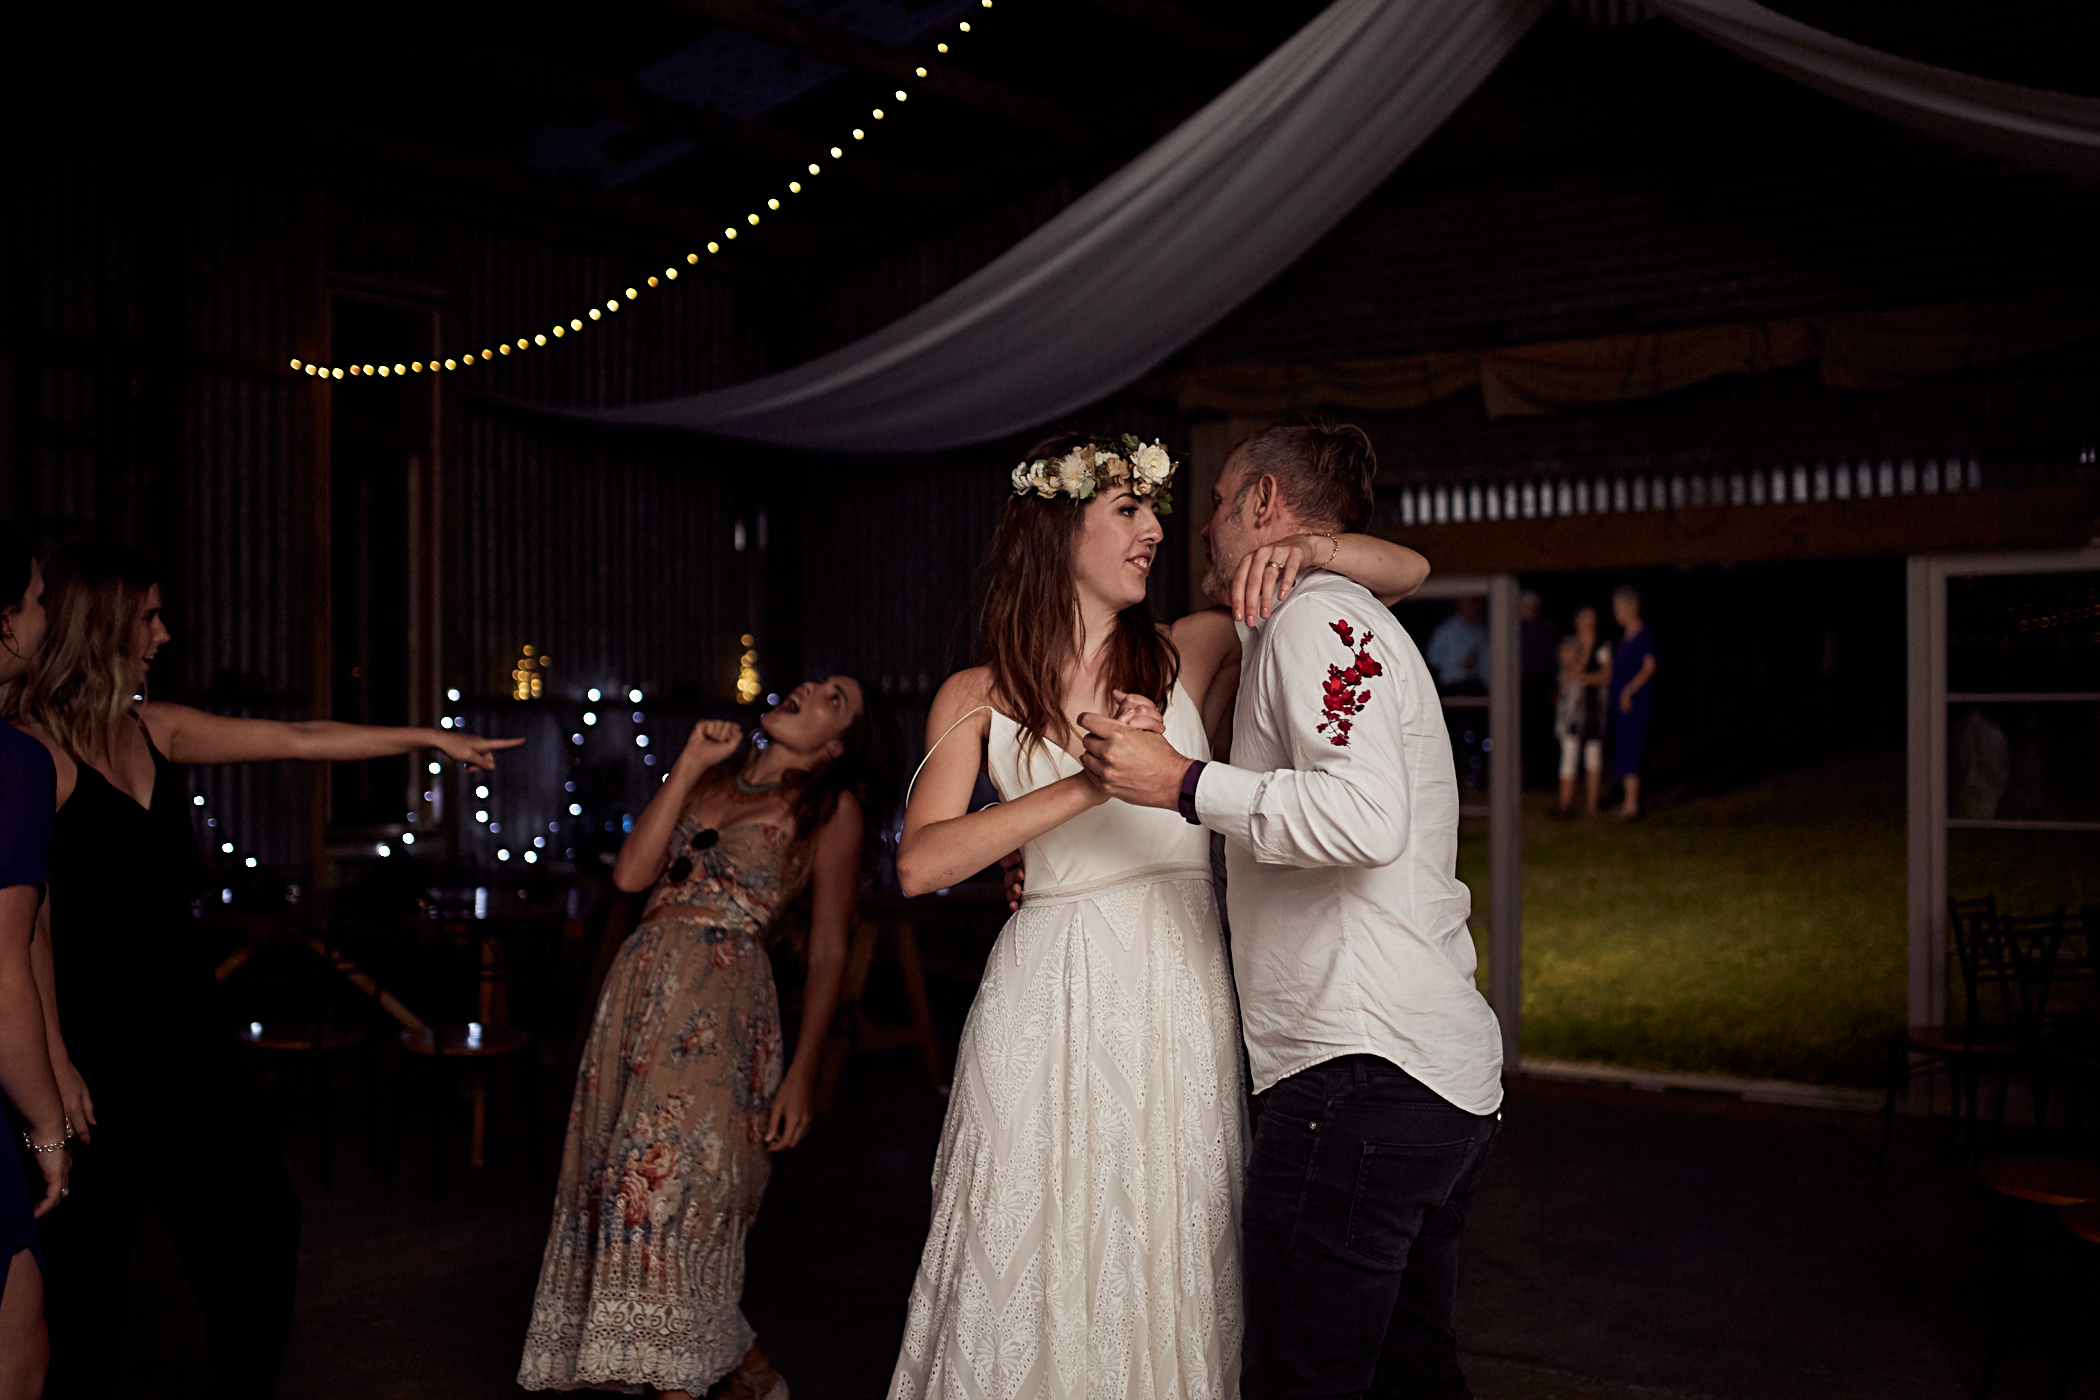 Wedding photographer Auckland